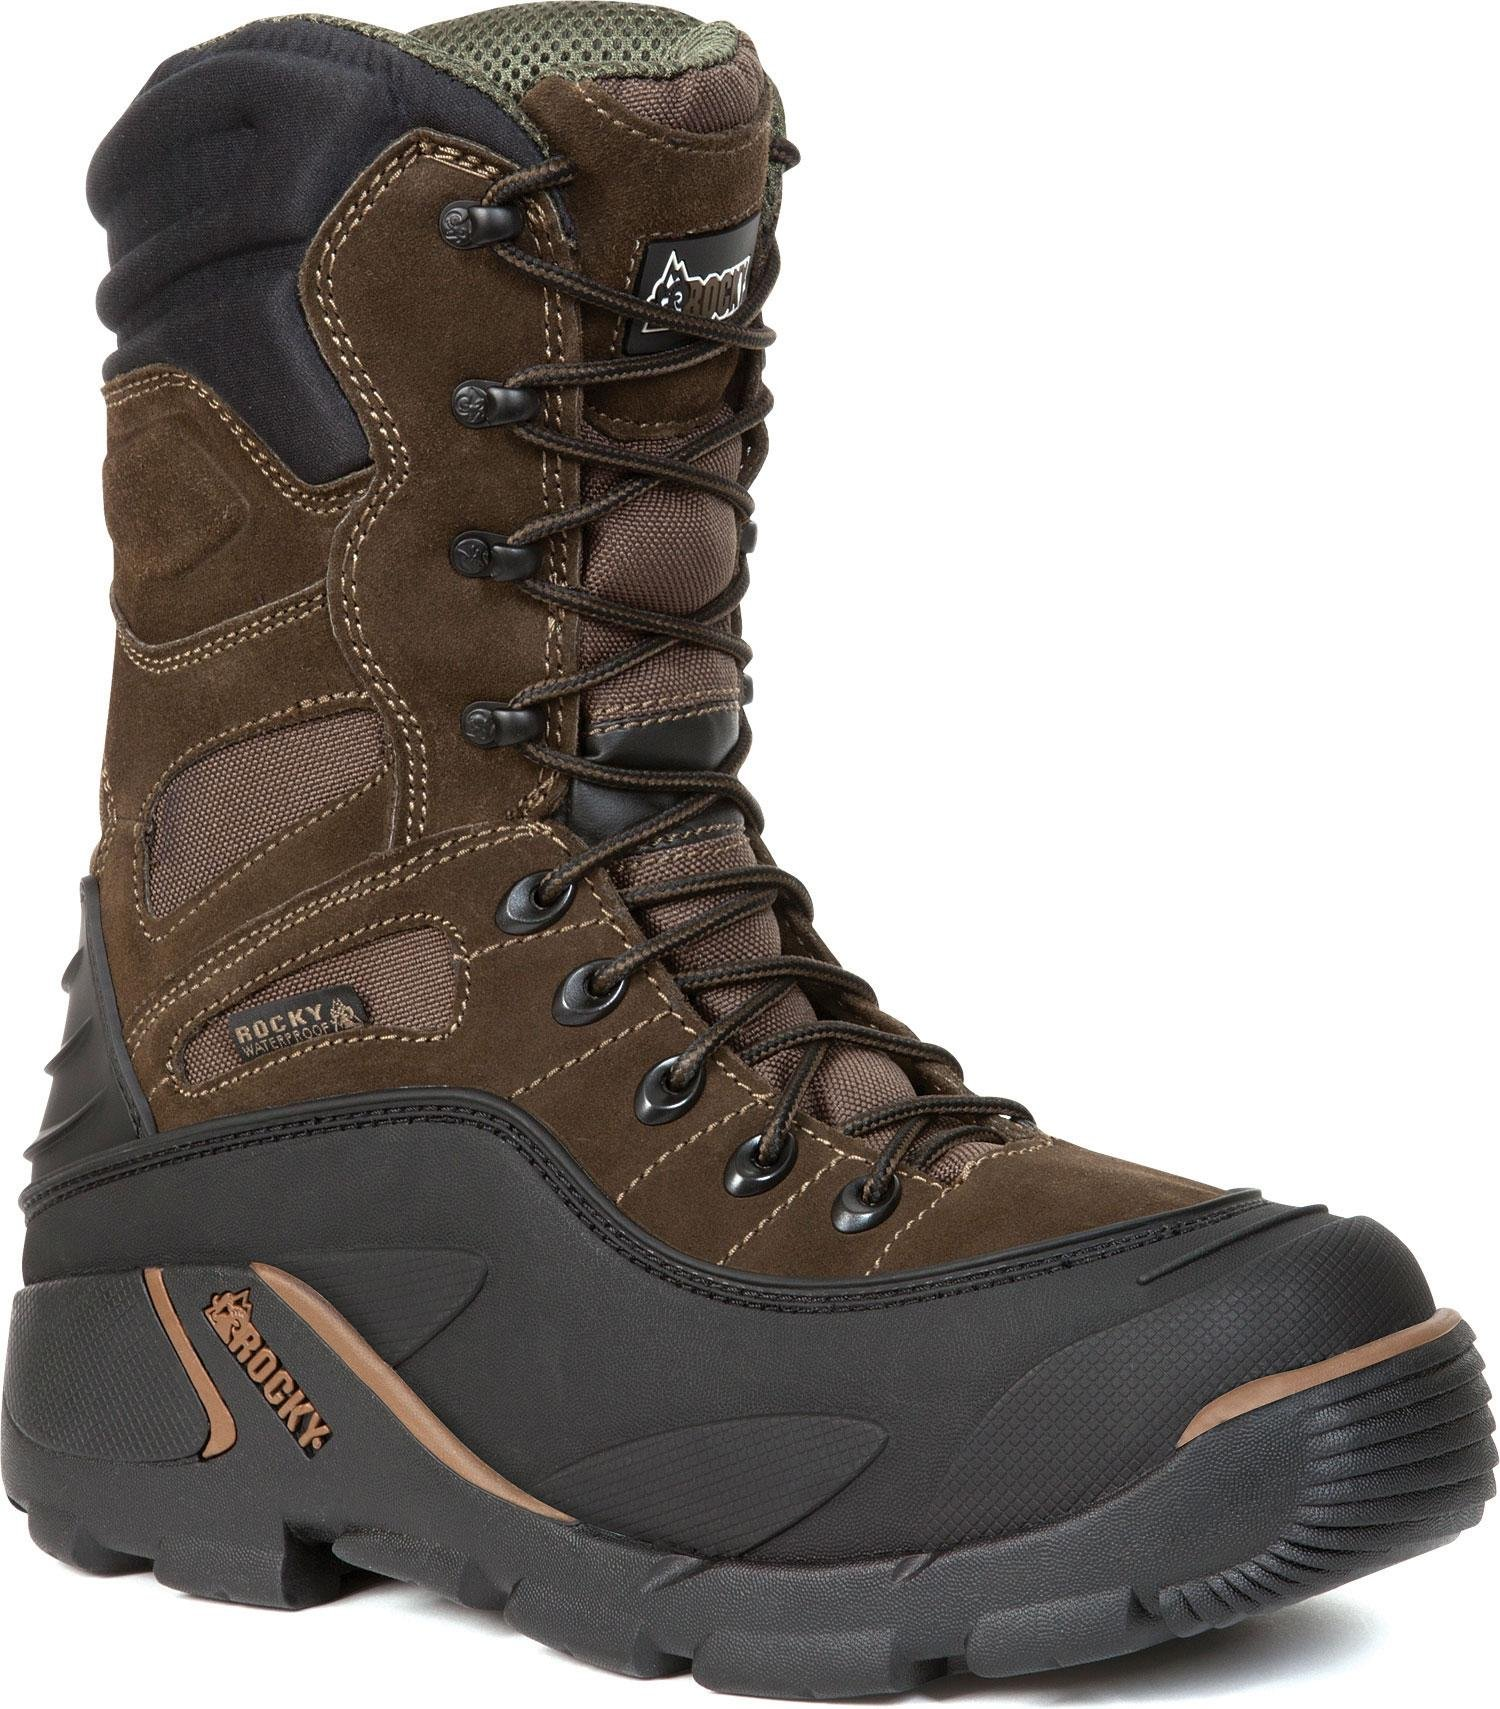 Rocky Men's Blizzard Stalker Pro Hunting Boot,Brown/Black,13 M US by ROCKY